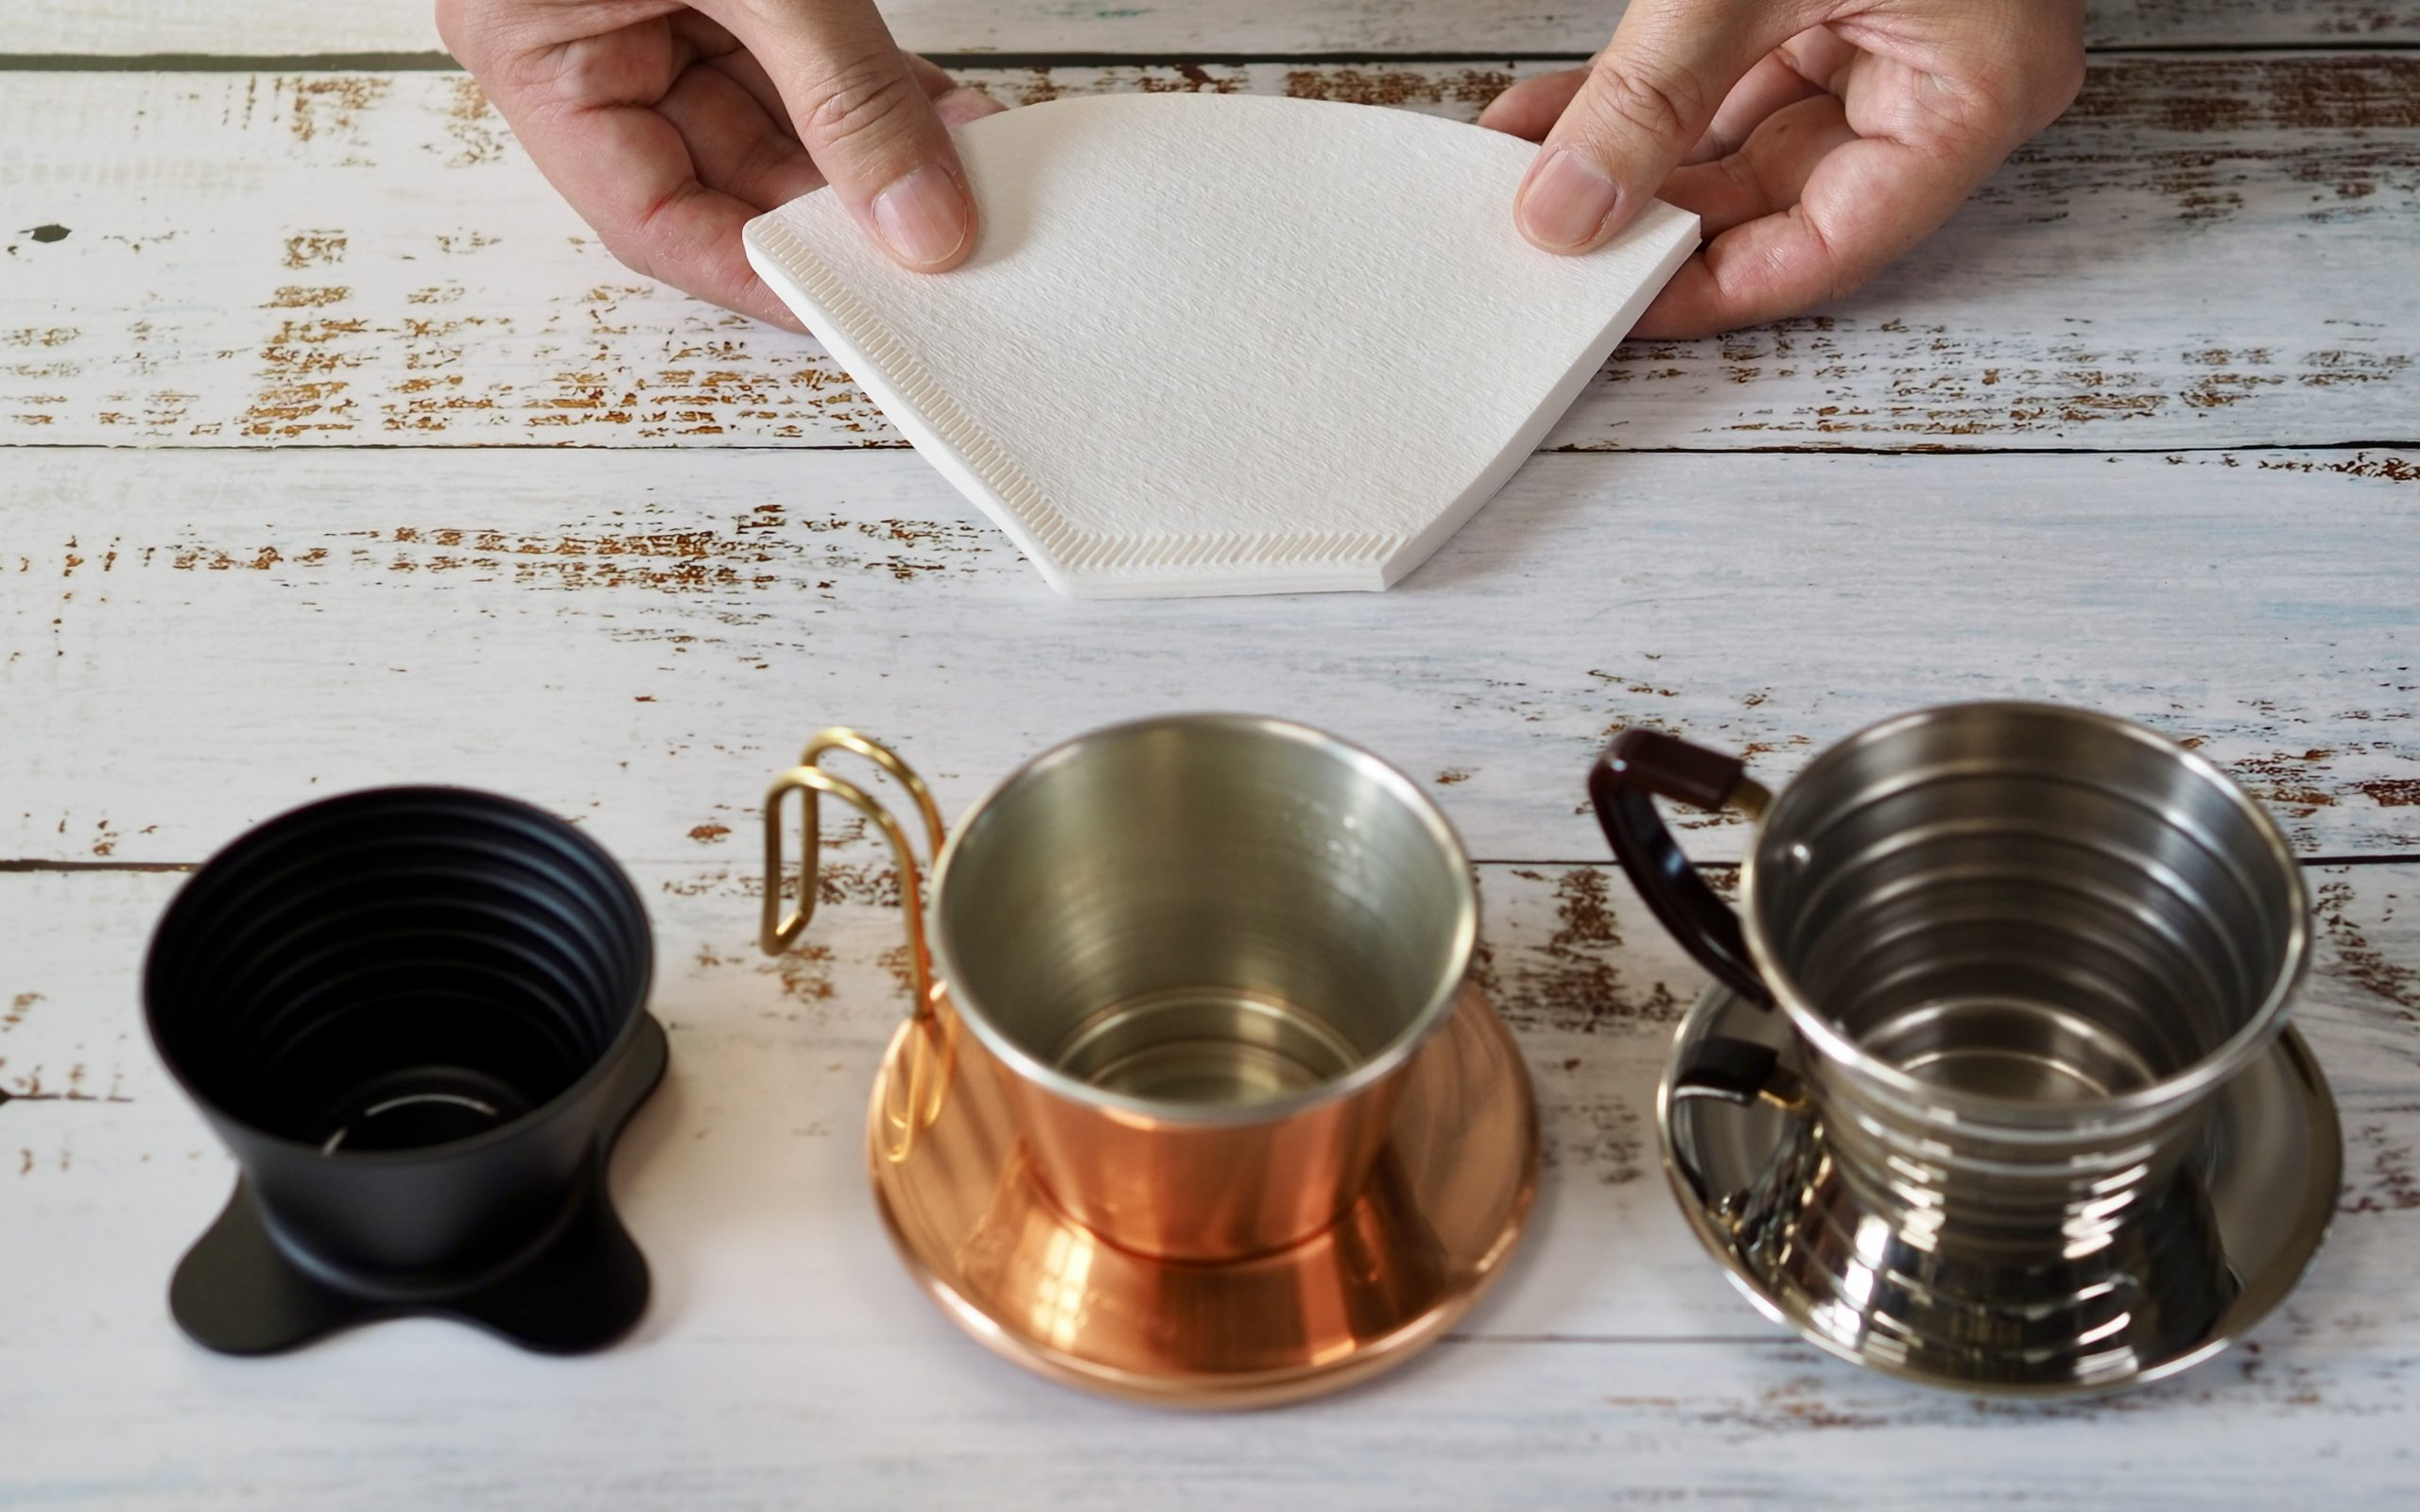 How to fit trapezoid filter to fit flat bottom drippers